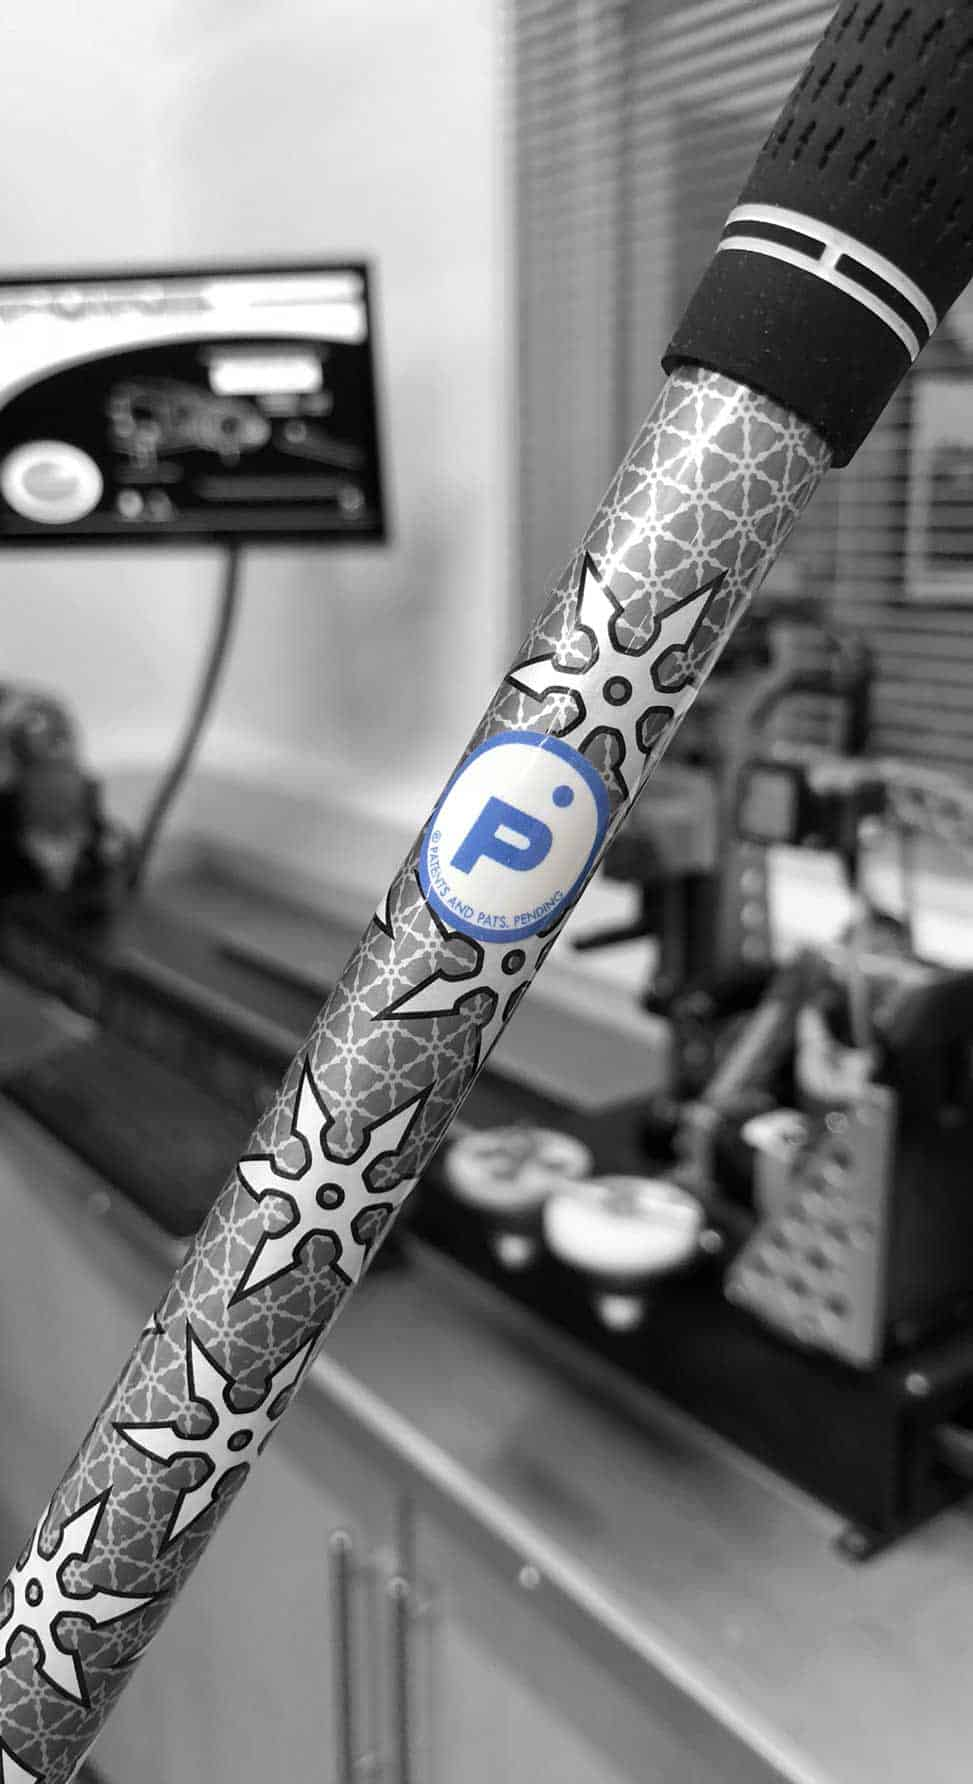 sst pure iron shafts